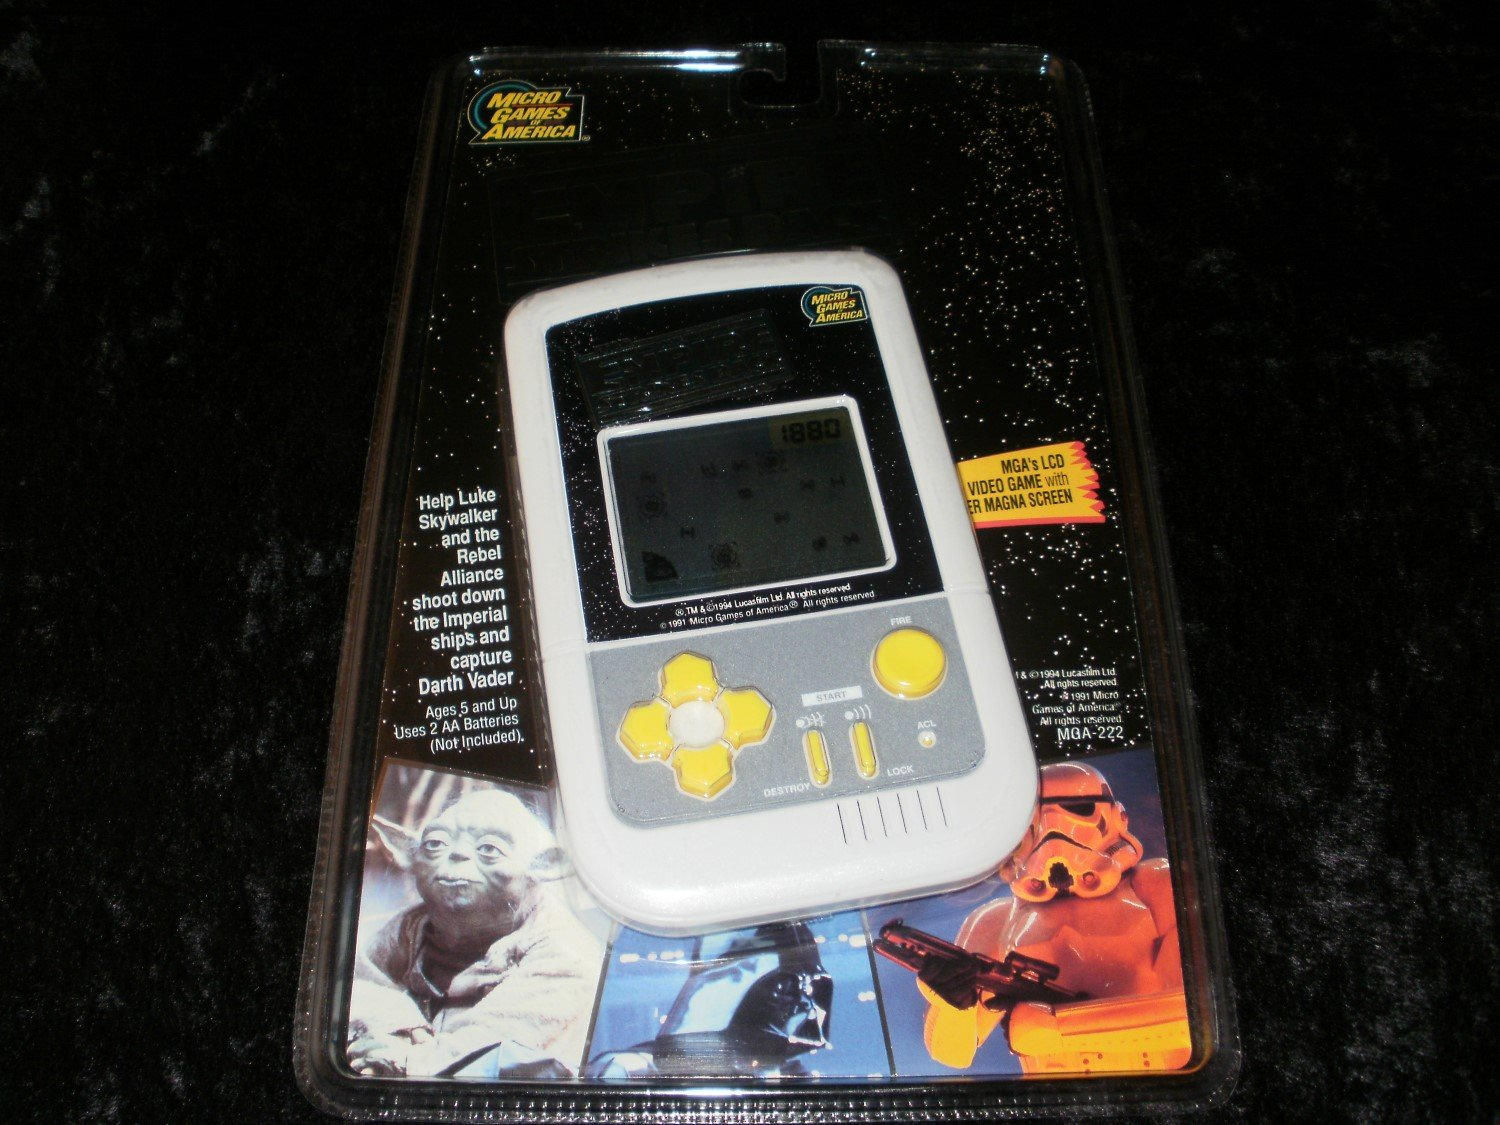 Star Wars The Empire Strikes Back - Vintage Handheld - Micro Games of America 1994 - Brand New